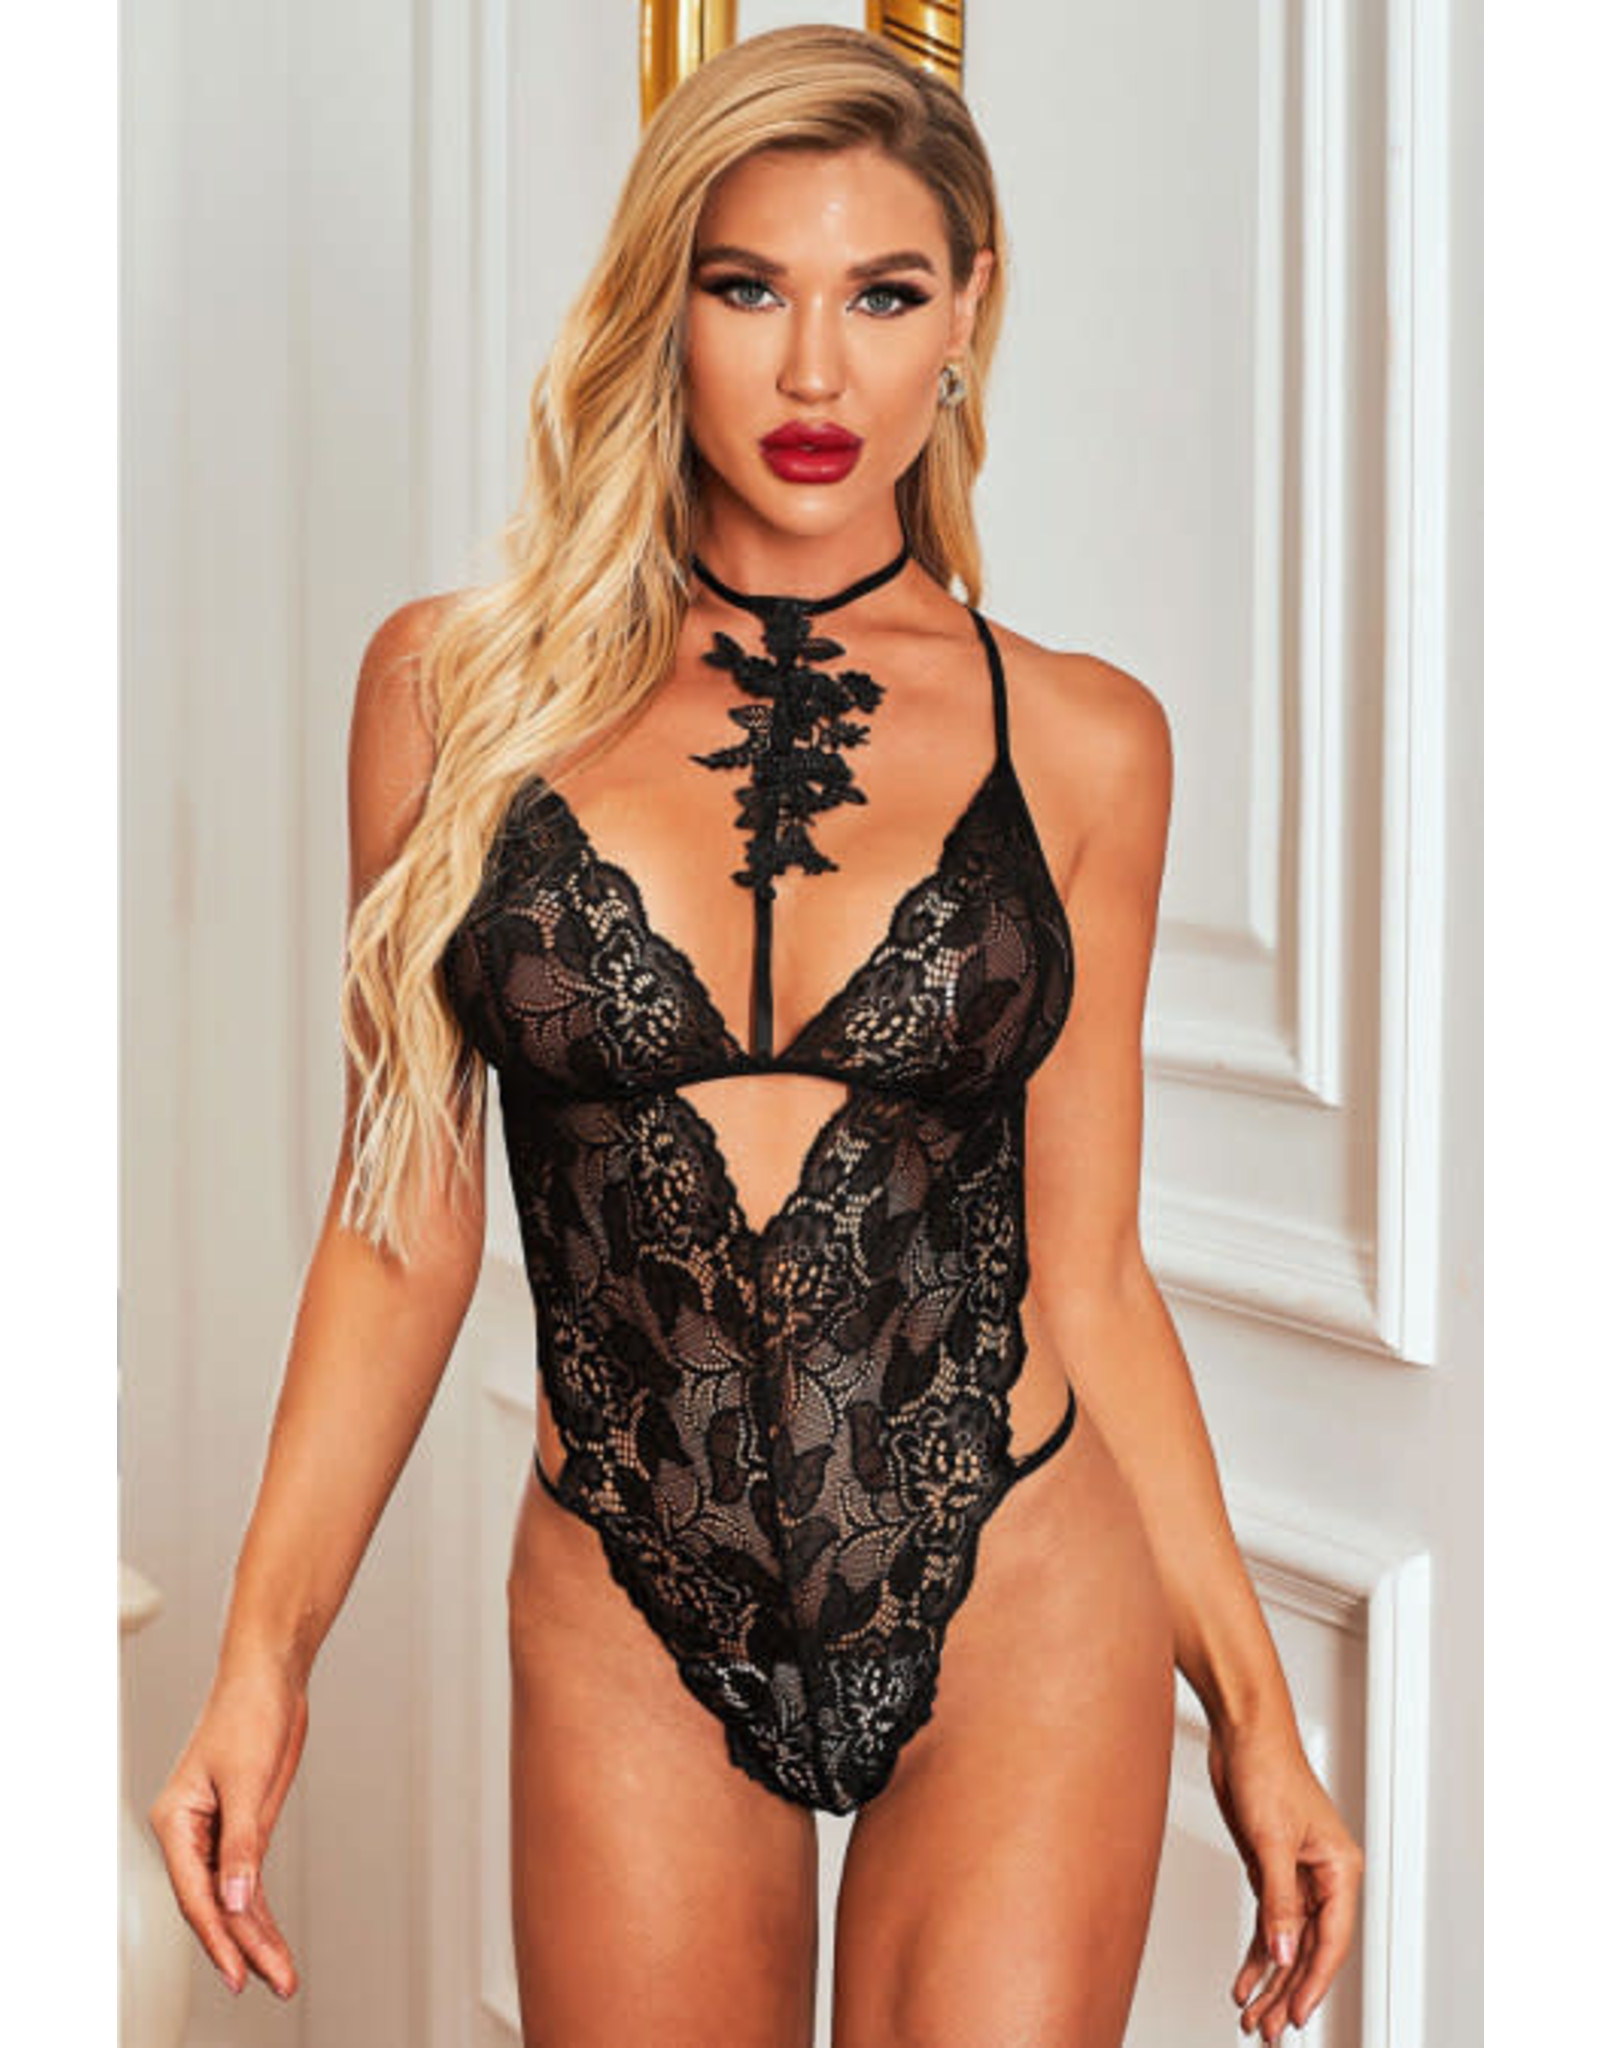 BLACK ROSES FALL LACE TEDDY - (US 8-10)M